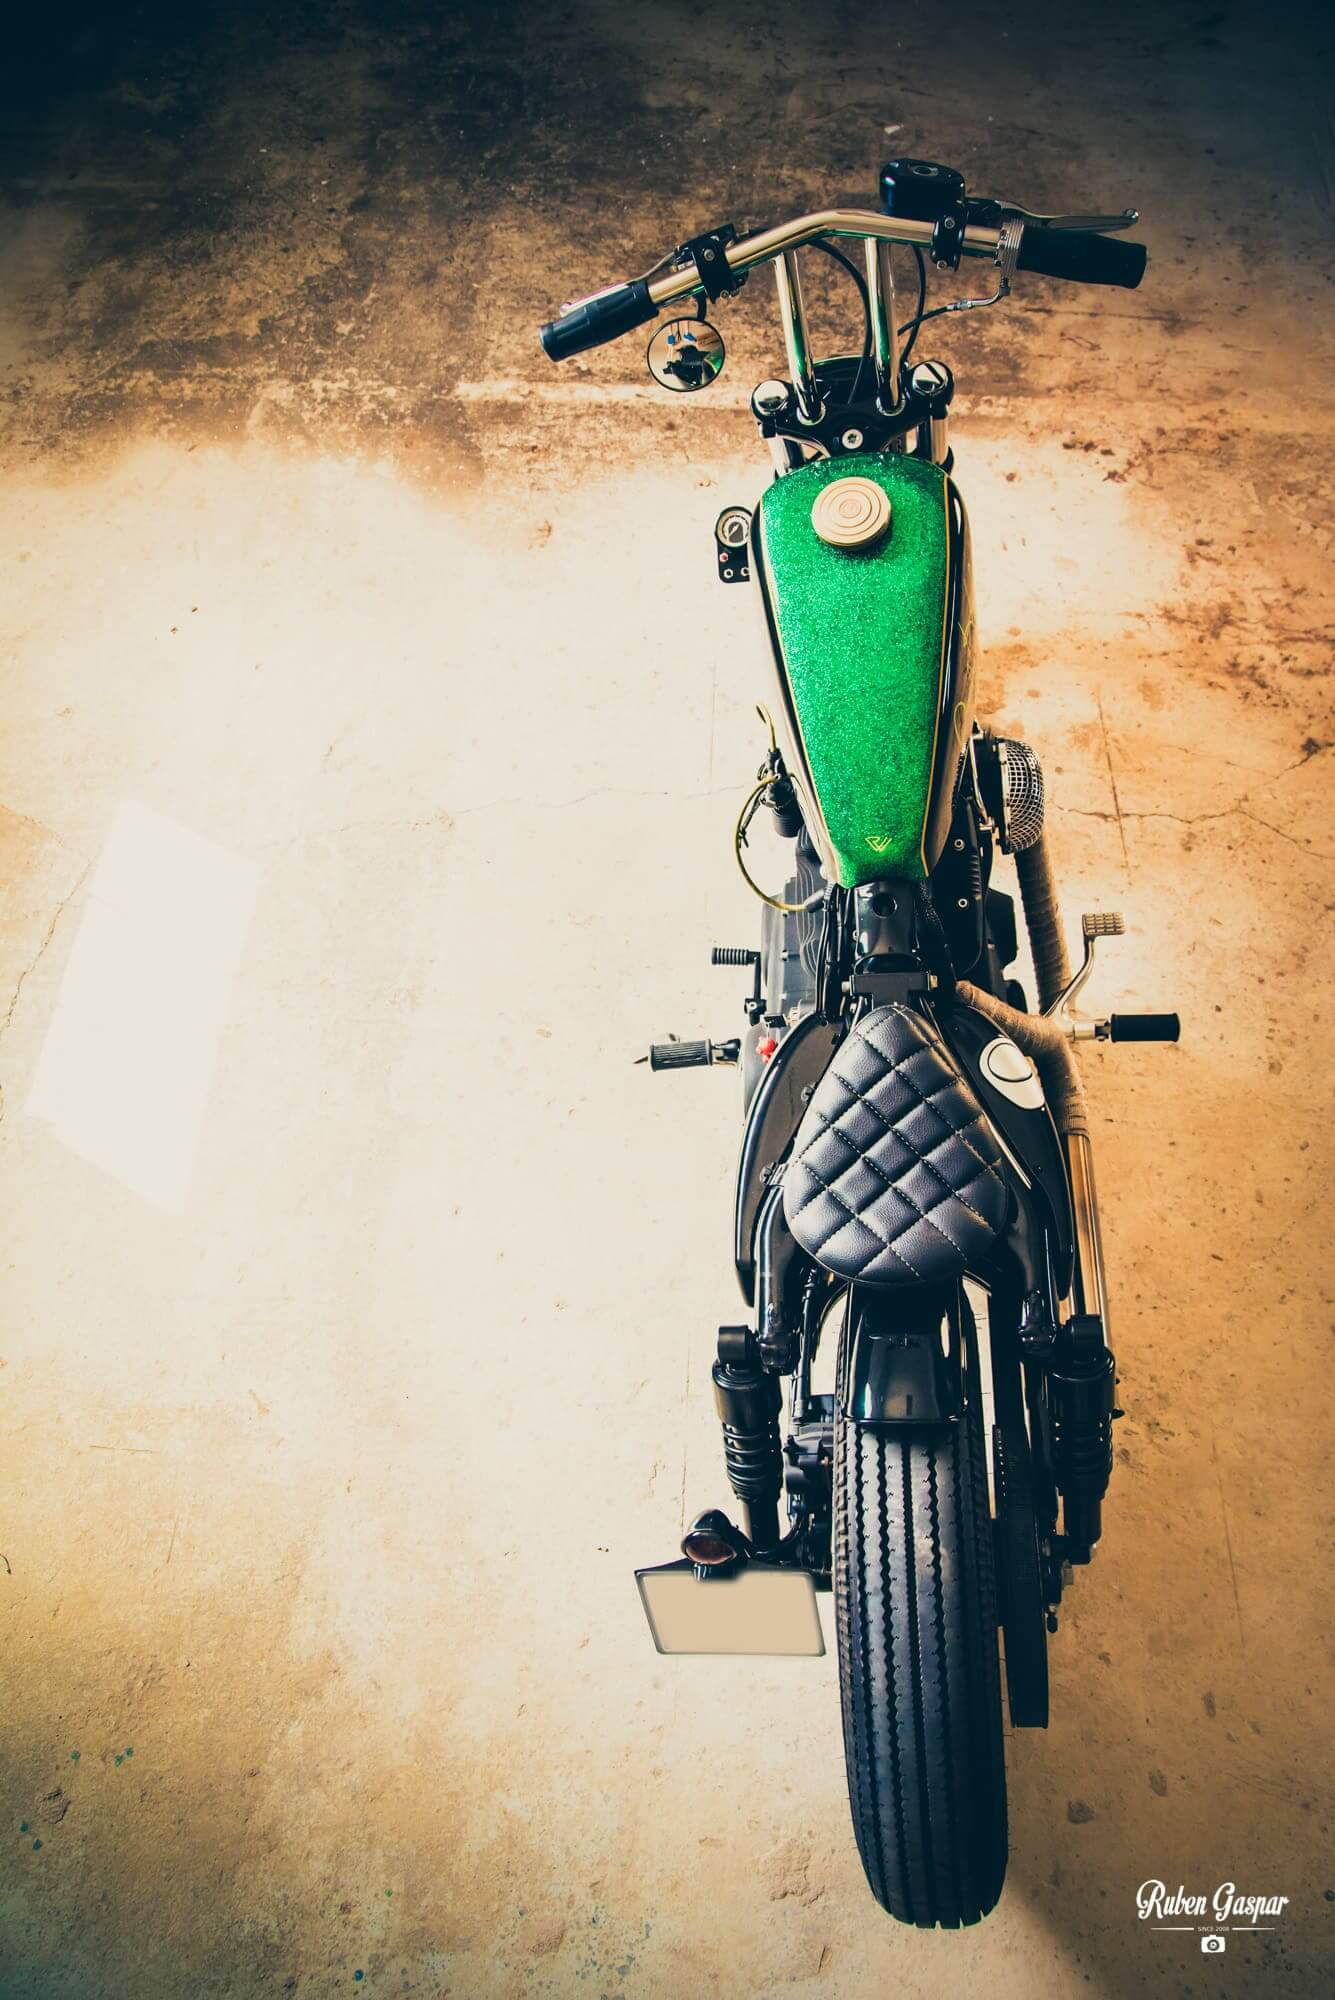 Gama Bike Custom Motorcycle